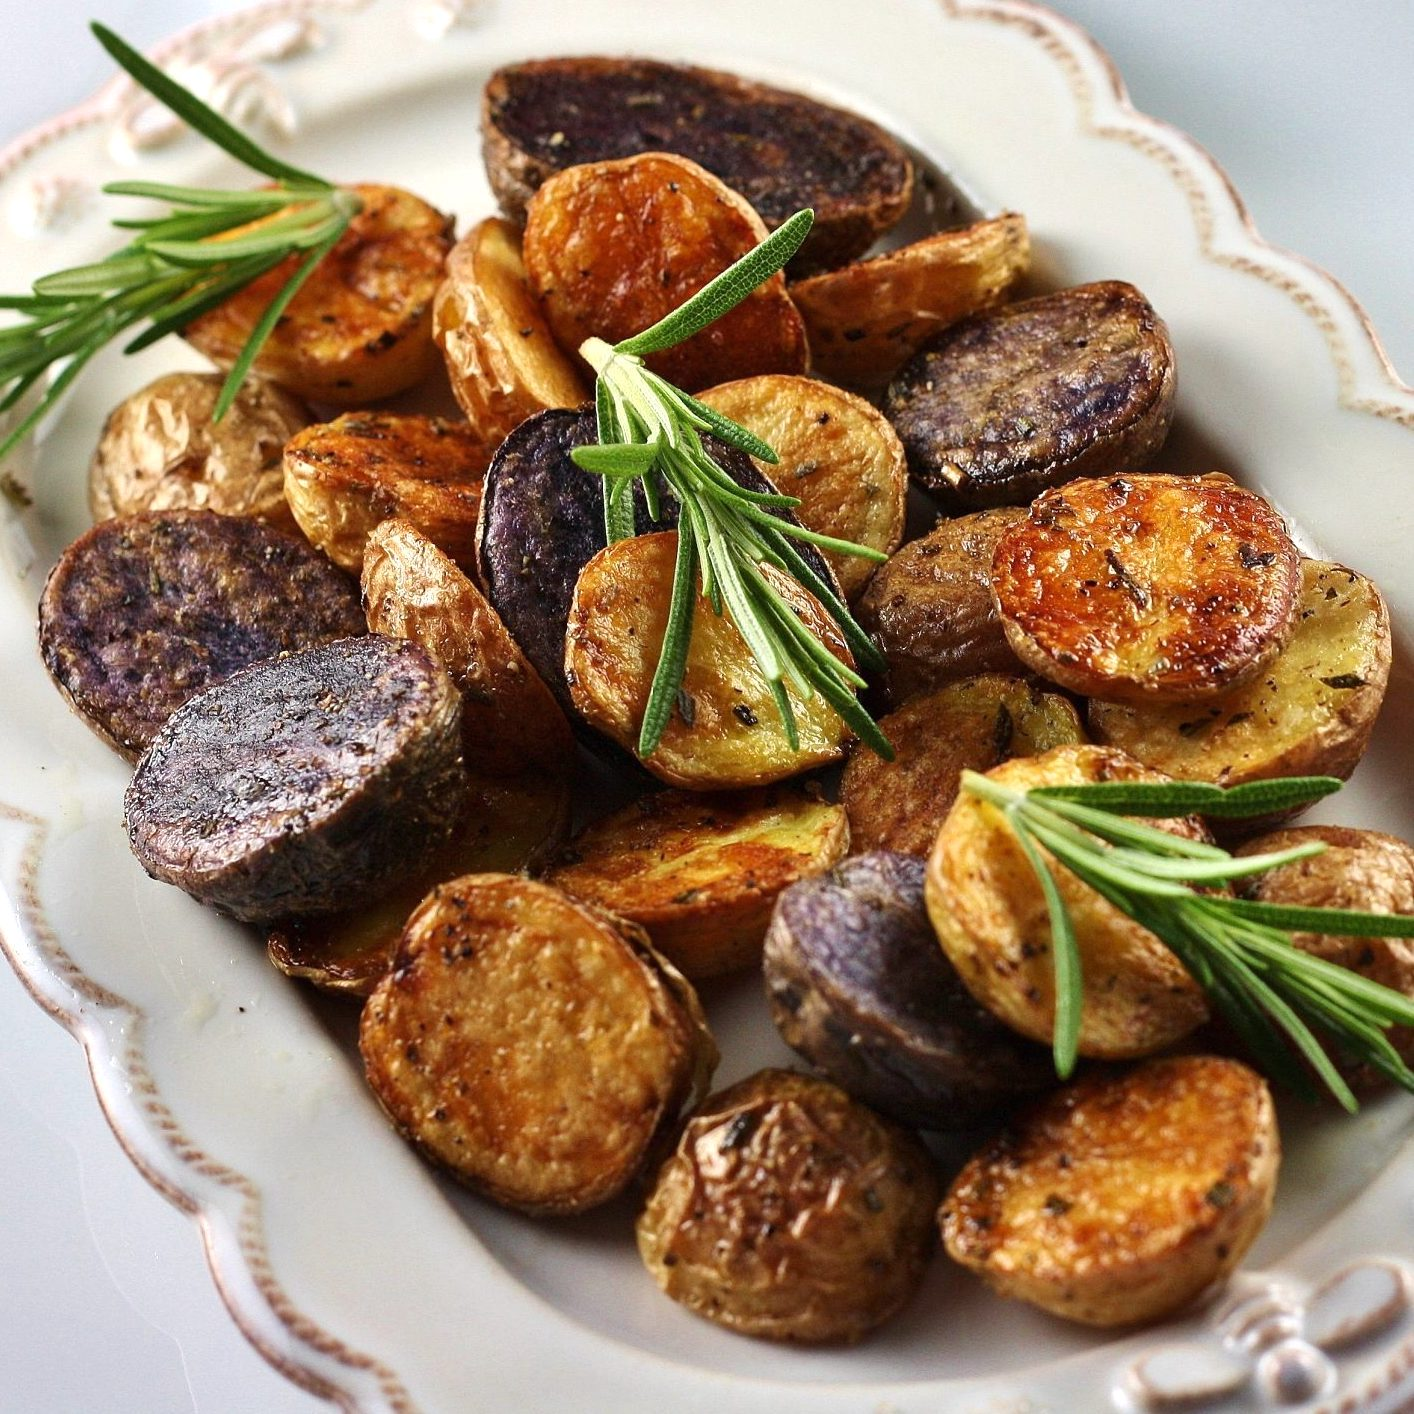 Roast Potatoes in a white dish